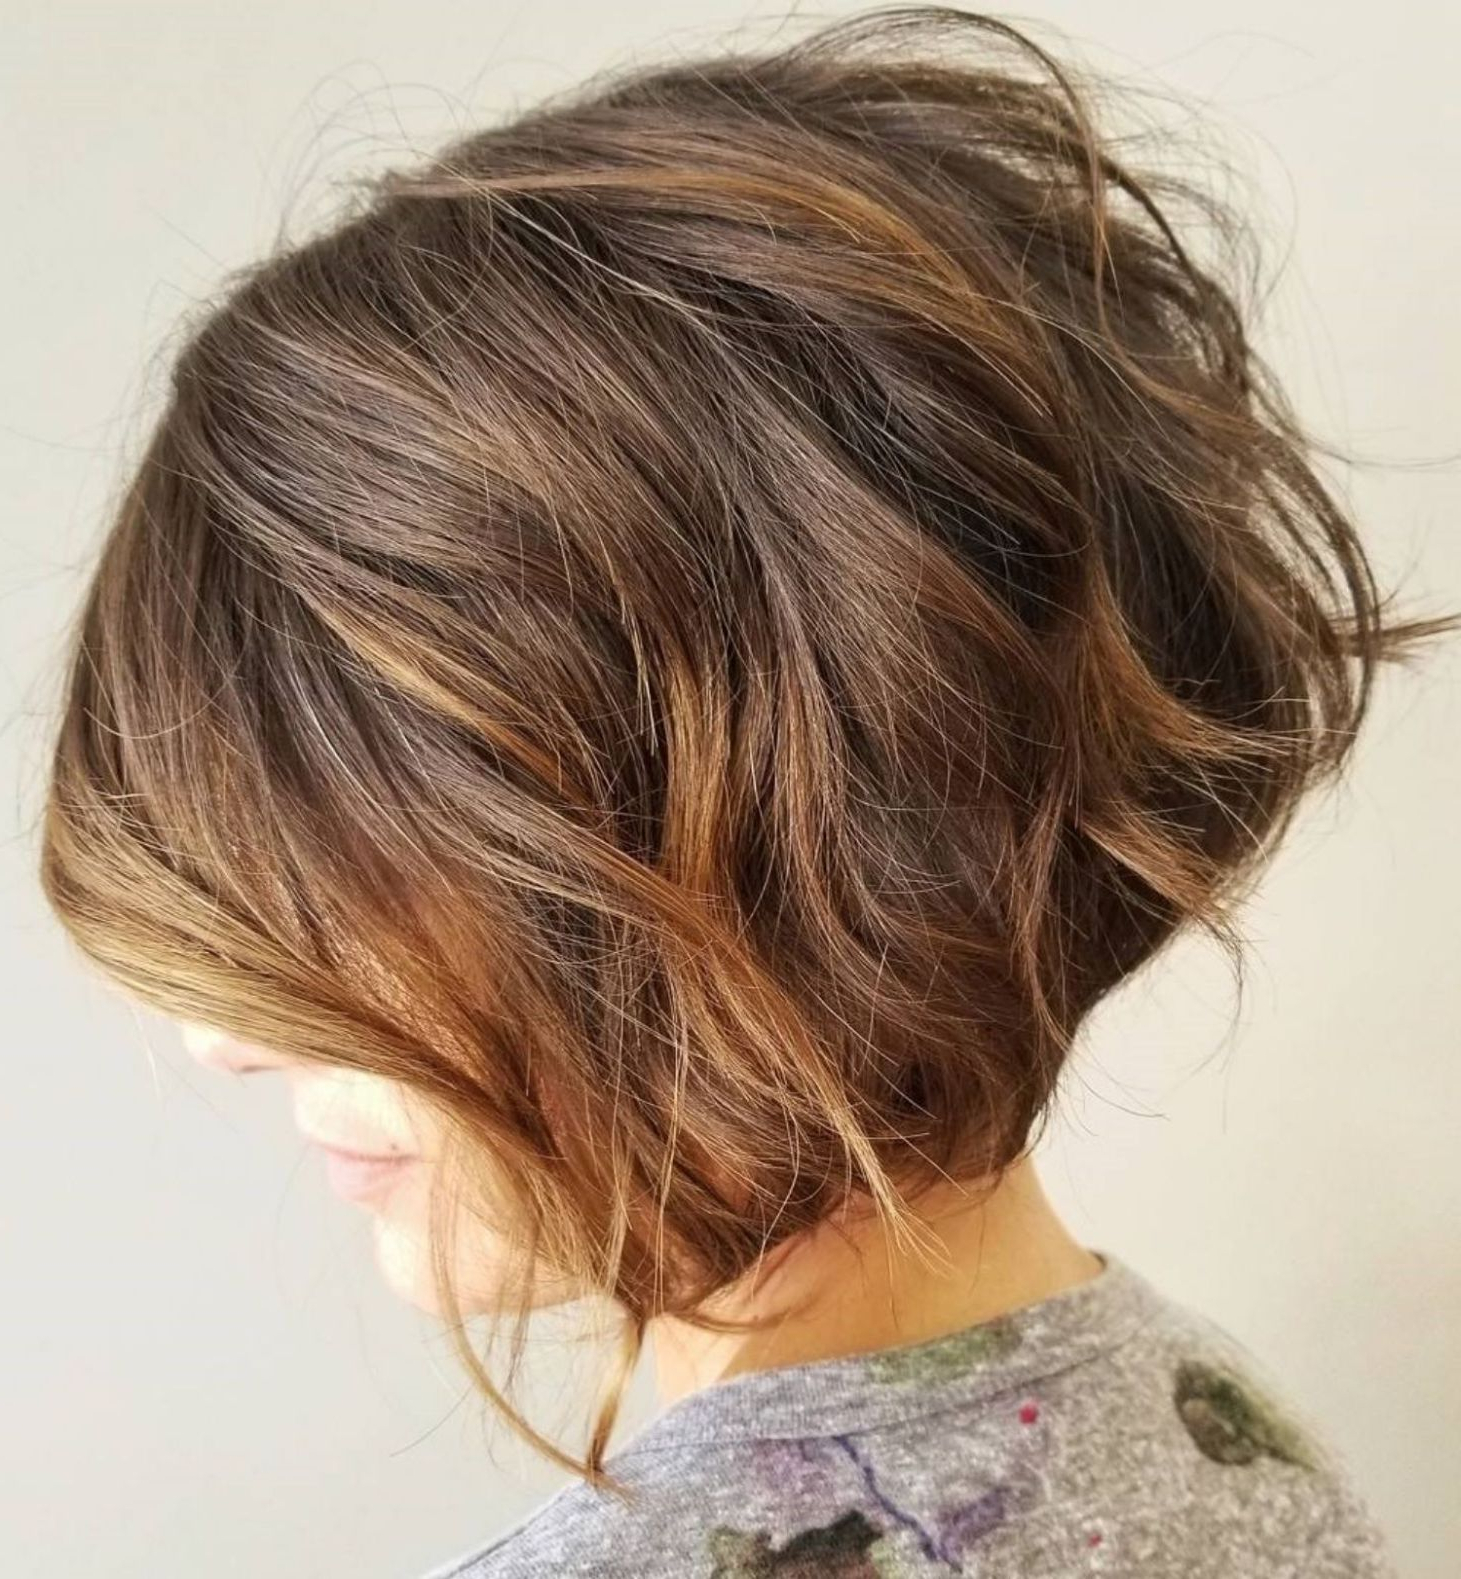 60 Best Short Bob Haircuts And Hairstyles For Women In 2018 | Hair Throughout Jaw Length Curly Messy Bob Hairstyles (Gallery 6 of 25)